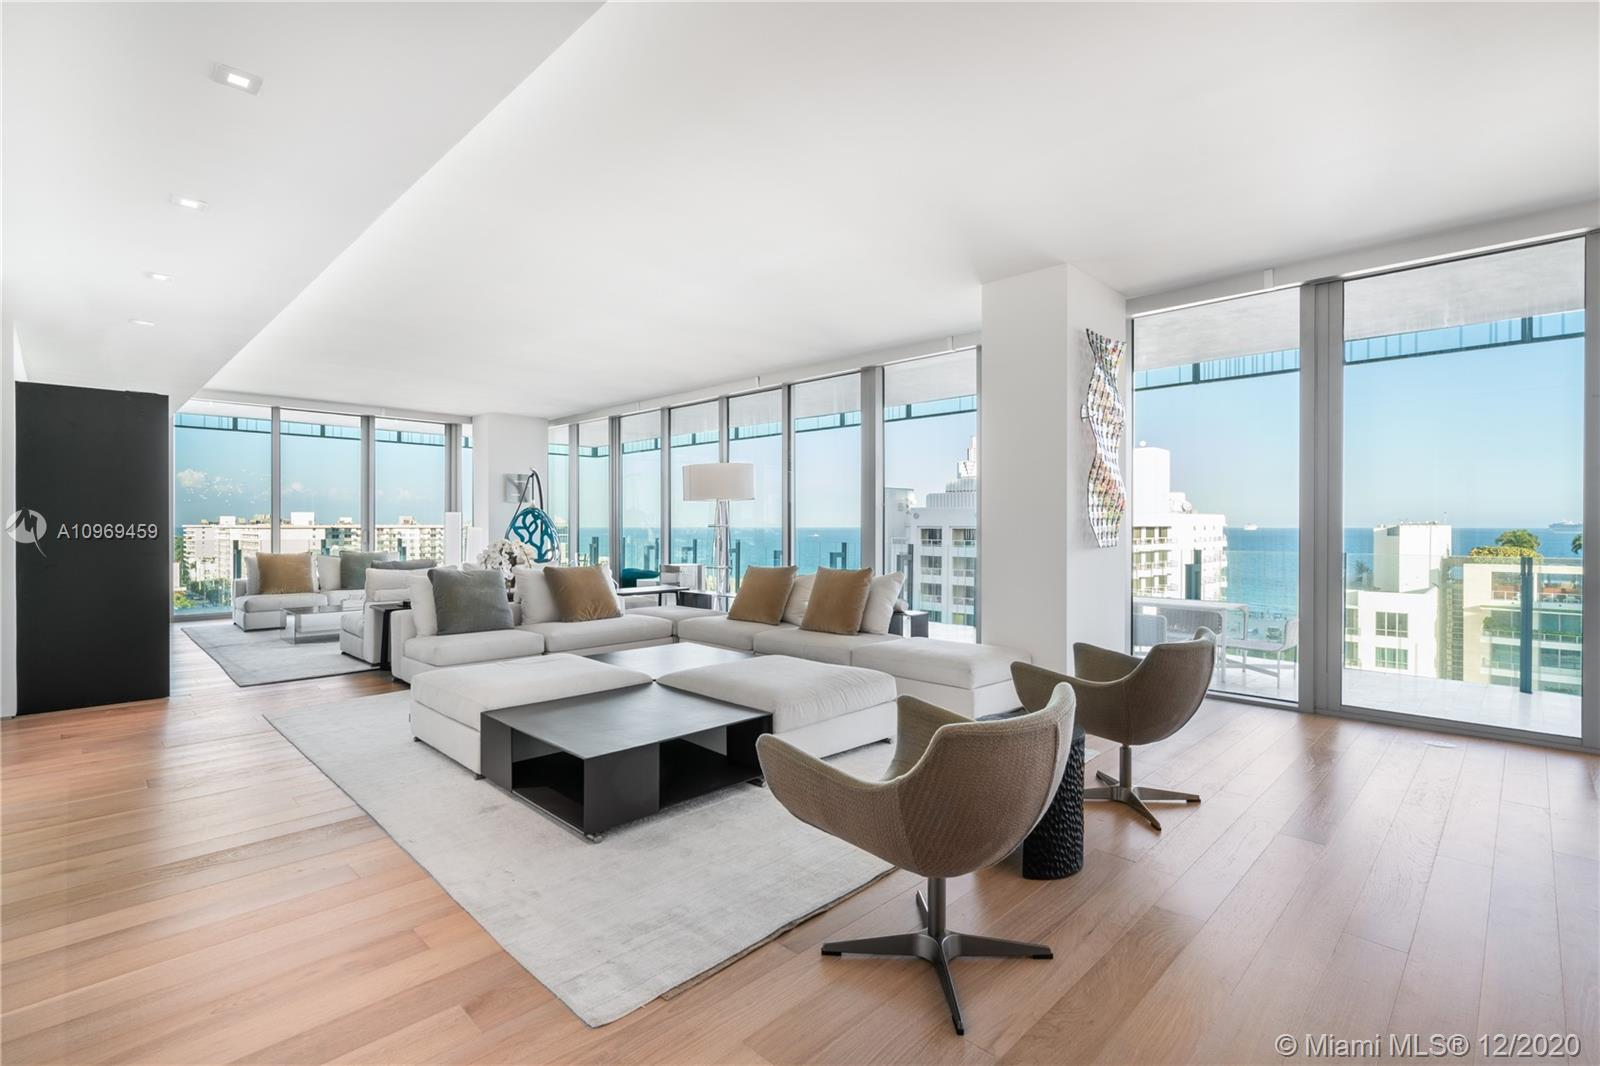 Take in sweeping ocean, South Beach, & Miami City skyline views from luxurious full-floor residence inside South of Fifths most significant new development, Glass! Designed by Architect Rene Gonzalez, you'll enjoy seamless interior + exterior living, a wraparound balcony in Fritted Glass, a Calcutta marble kitchen integrated w/ Subzero + Gaggenau appliances, interior wood floors, travertine stone exteriors, & more! This 10th-floor residence is finished & furnished w/ custom-designed furniture by Paola Lenti & Minotti. Experience elegance & exclusivity in this chic, modern building that epitomizes the South of Fifth neighborhood & the beach's urban vibe. Deluxe amenities include full-level pool, spa, bbq area, pool service, beach club, state-of-the-art gym, 24-hr security, & valet service.